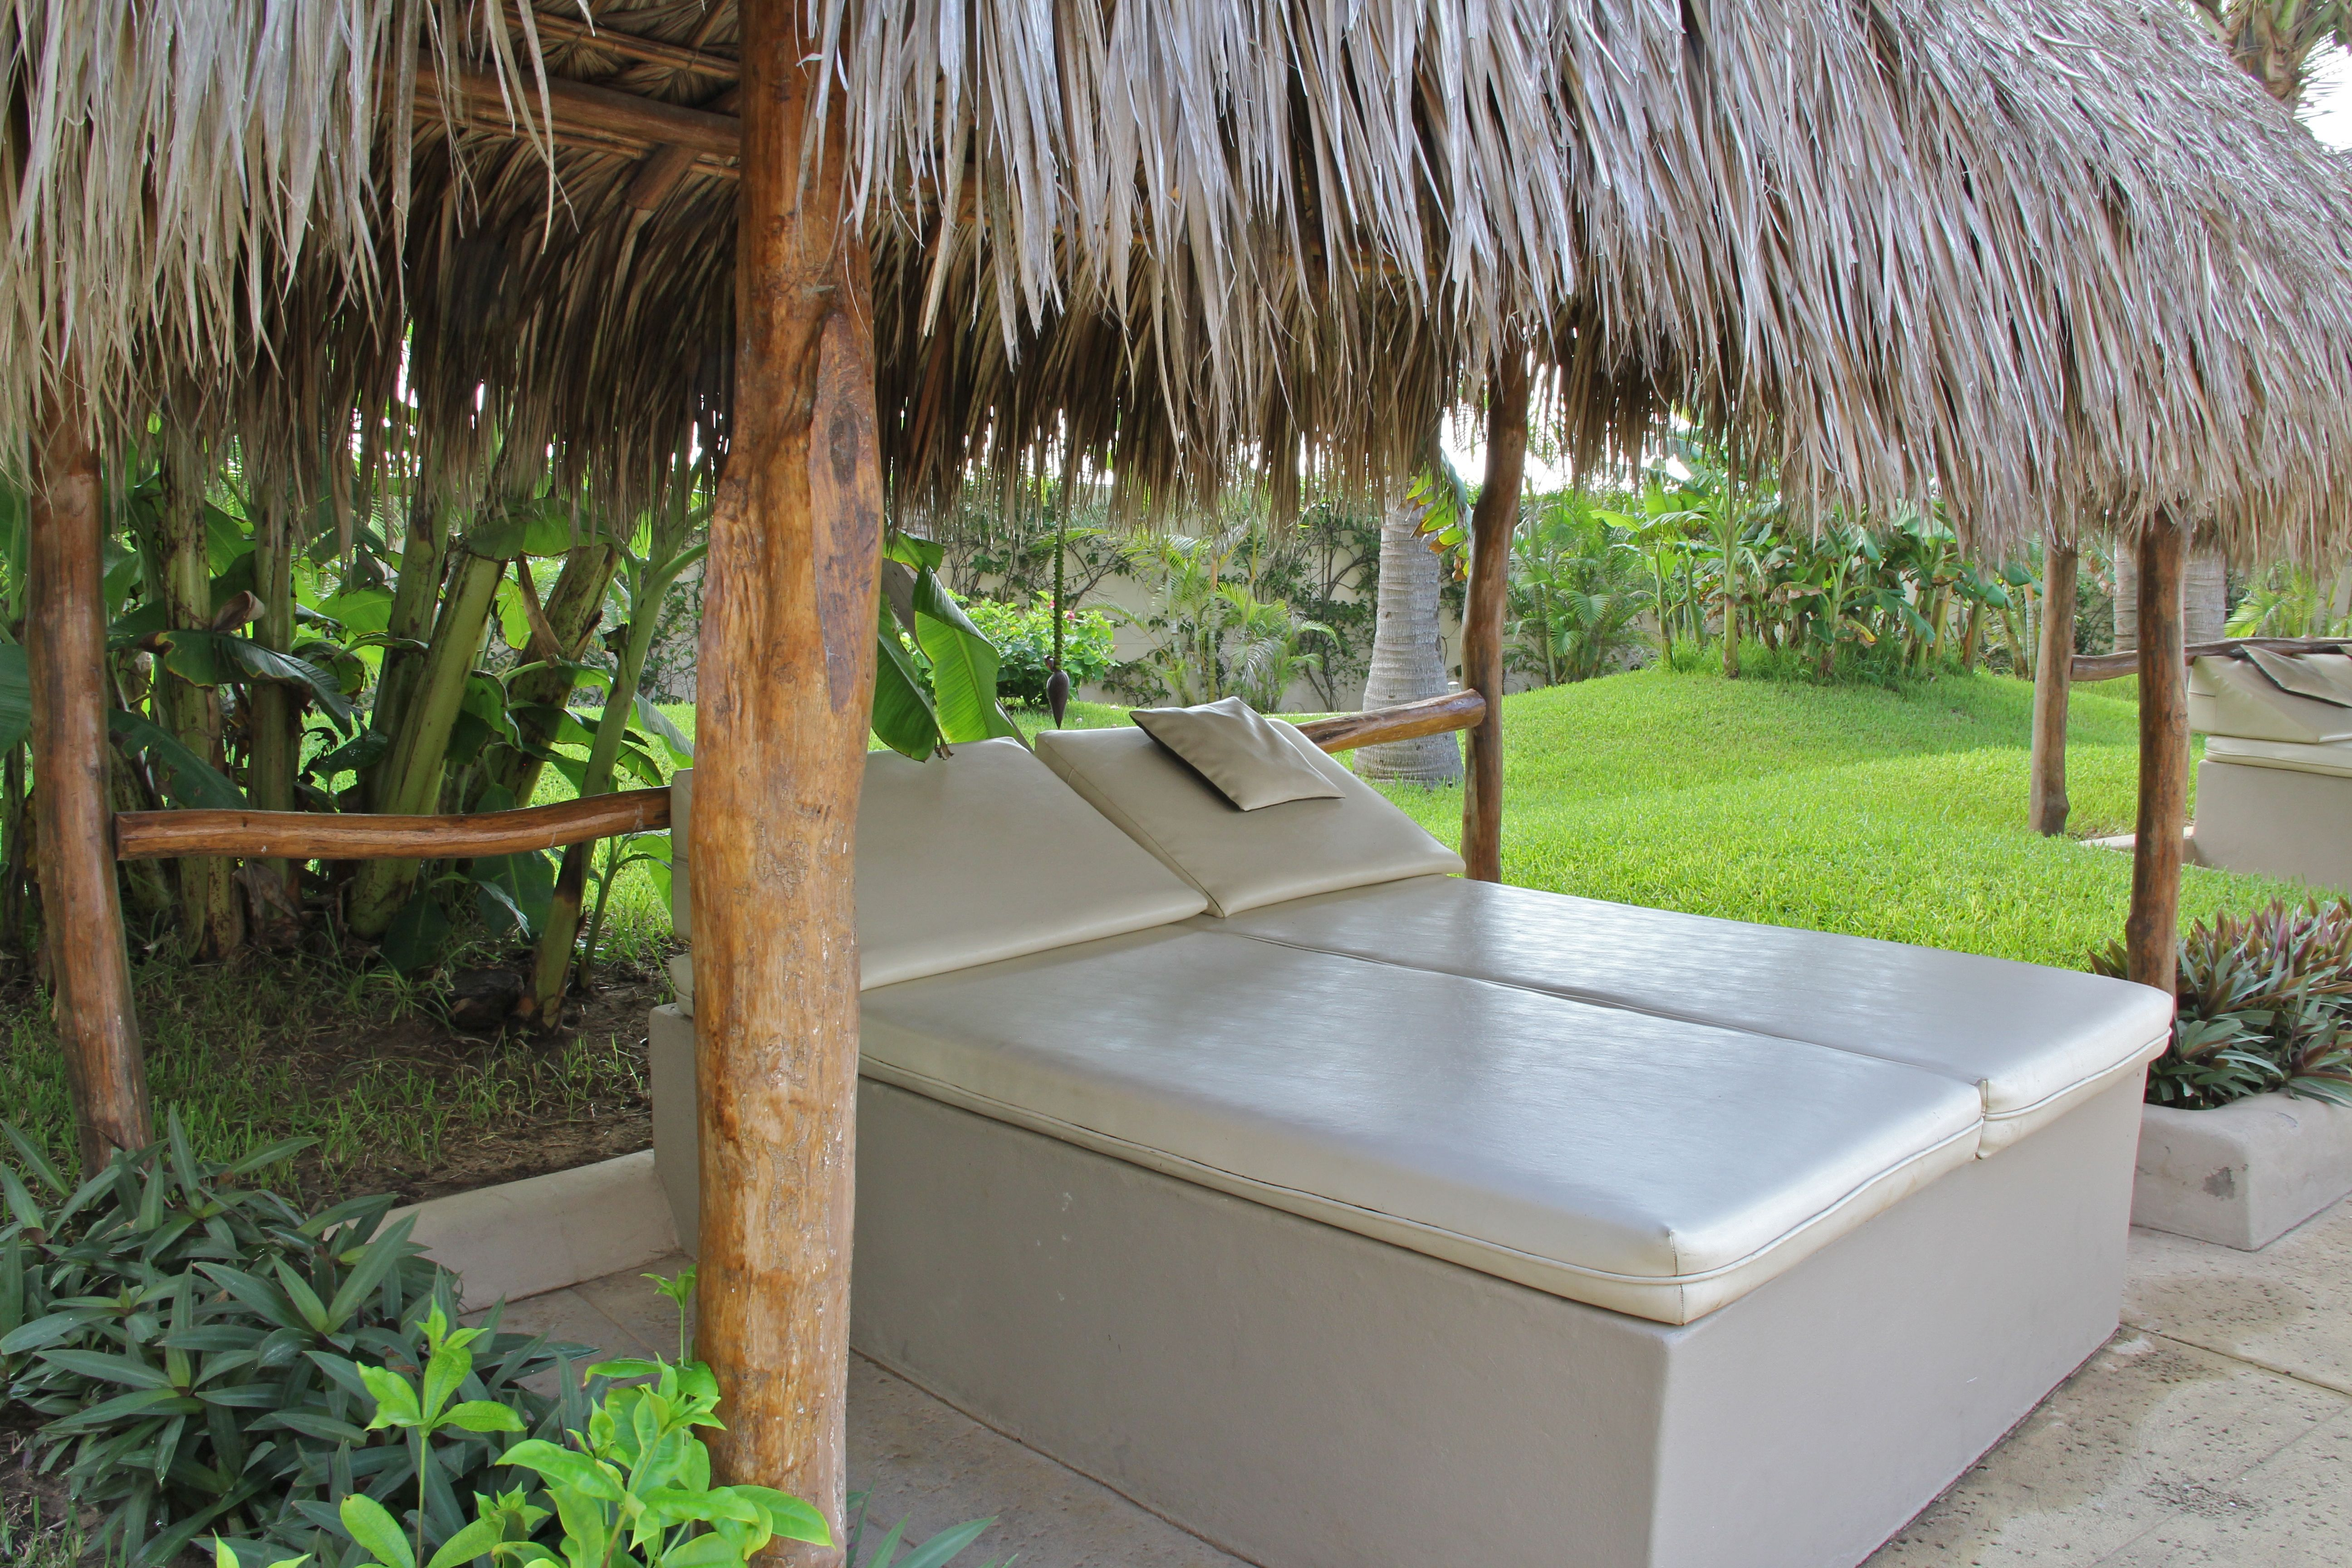 Palapa loungers, oooh so inviting!